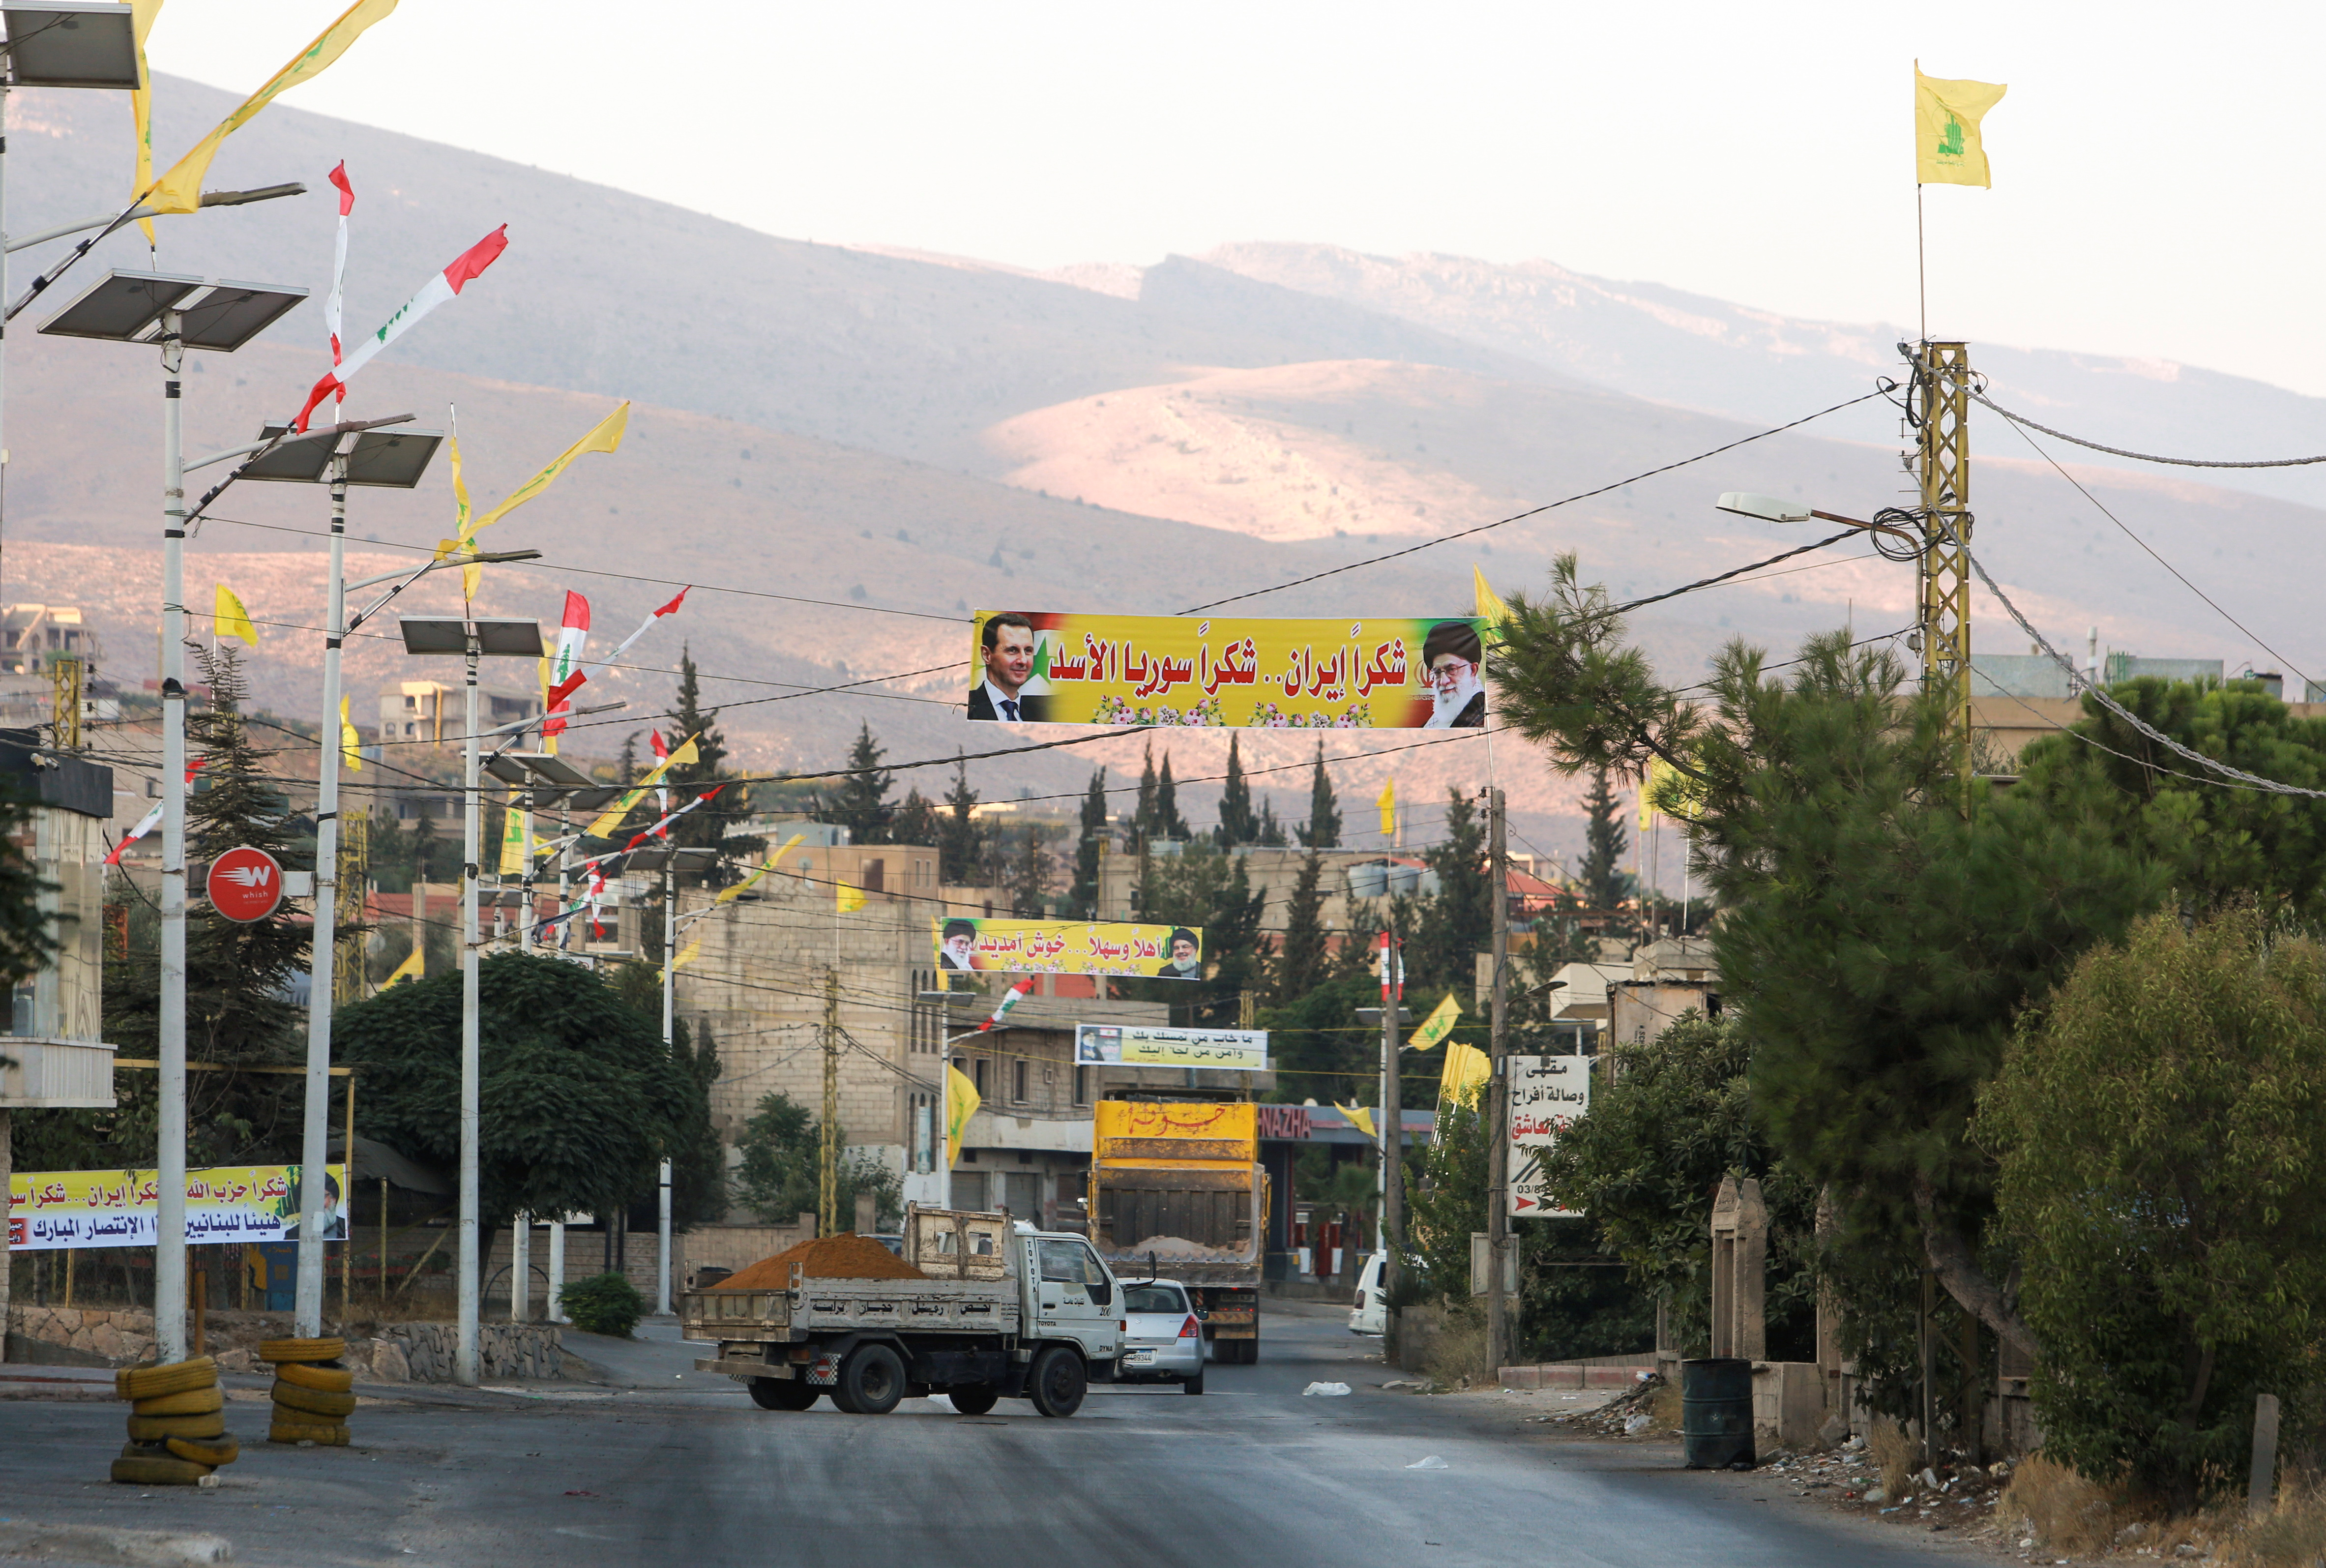 Vehicles ride near a banner depicting Syria's President Bashar al-Assad, and Iran's Supreme Leader Ayatollah Ali Khamenei as the first truck carrying Iranian fuel is expected to reach Lebanon today, near the Lebanese-Syrian border, in al-Ain village, Lebanon September 16, 2021. REUTERS/Aziz Taher